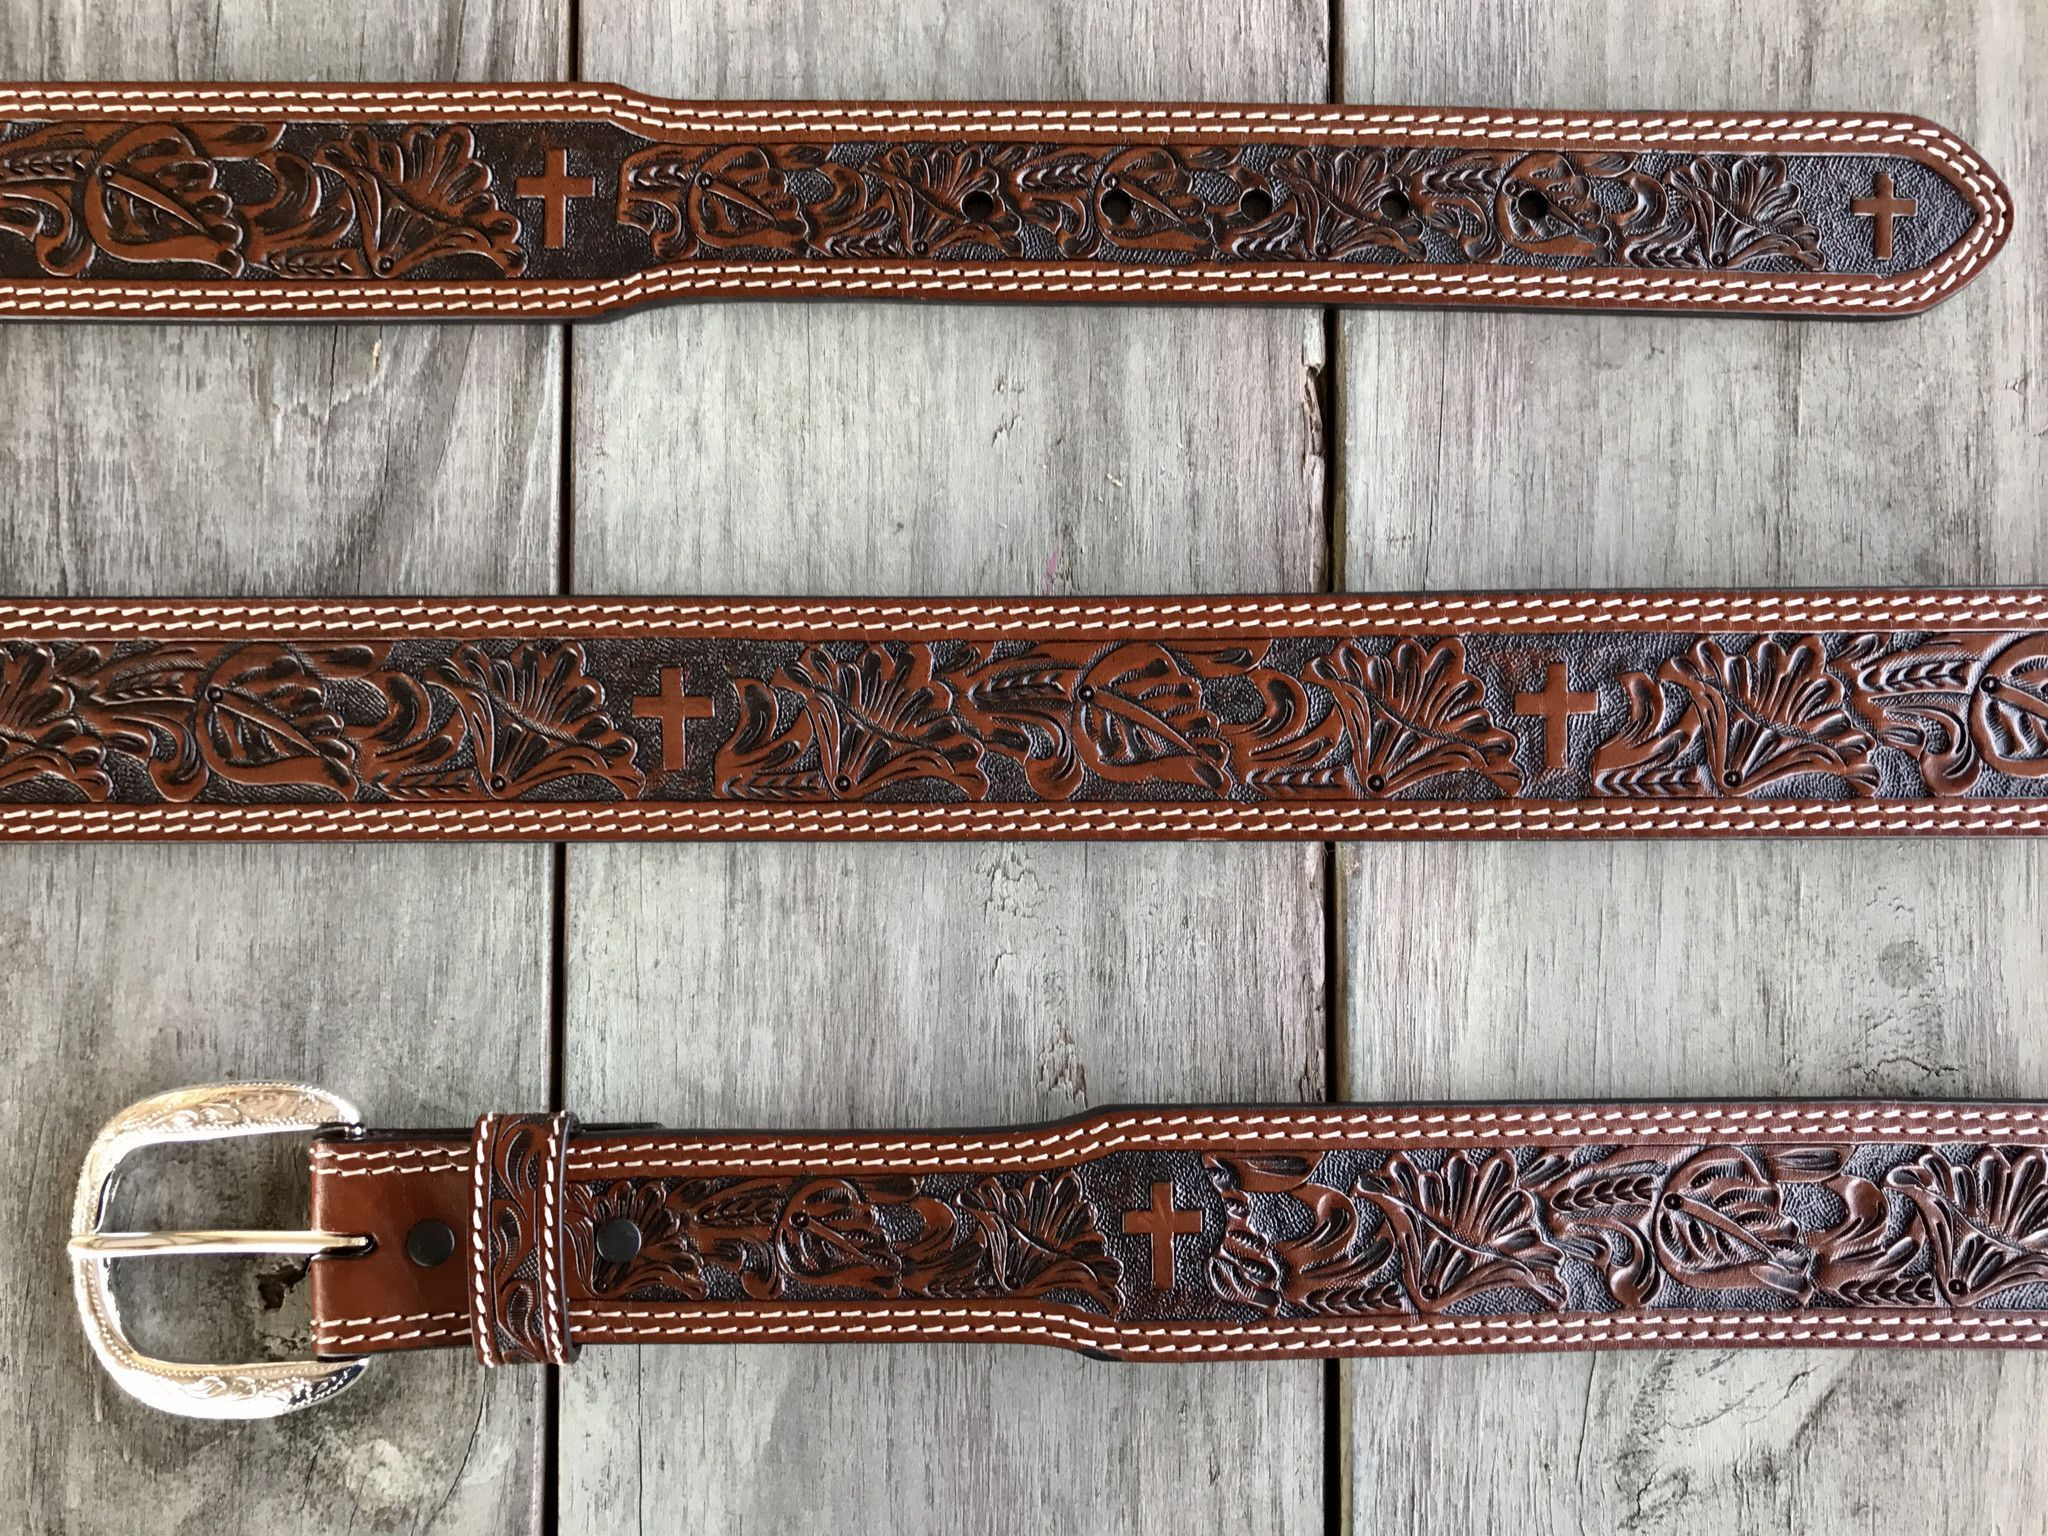 Men's Floral and Cross Hand Tooled Belt by Cowboy Chrome